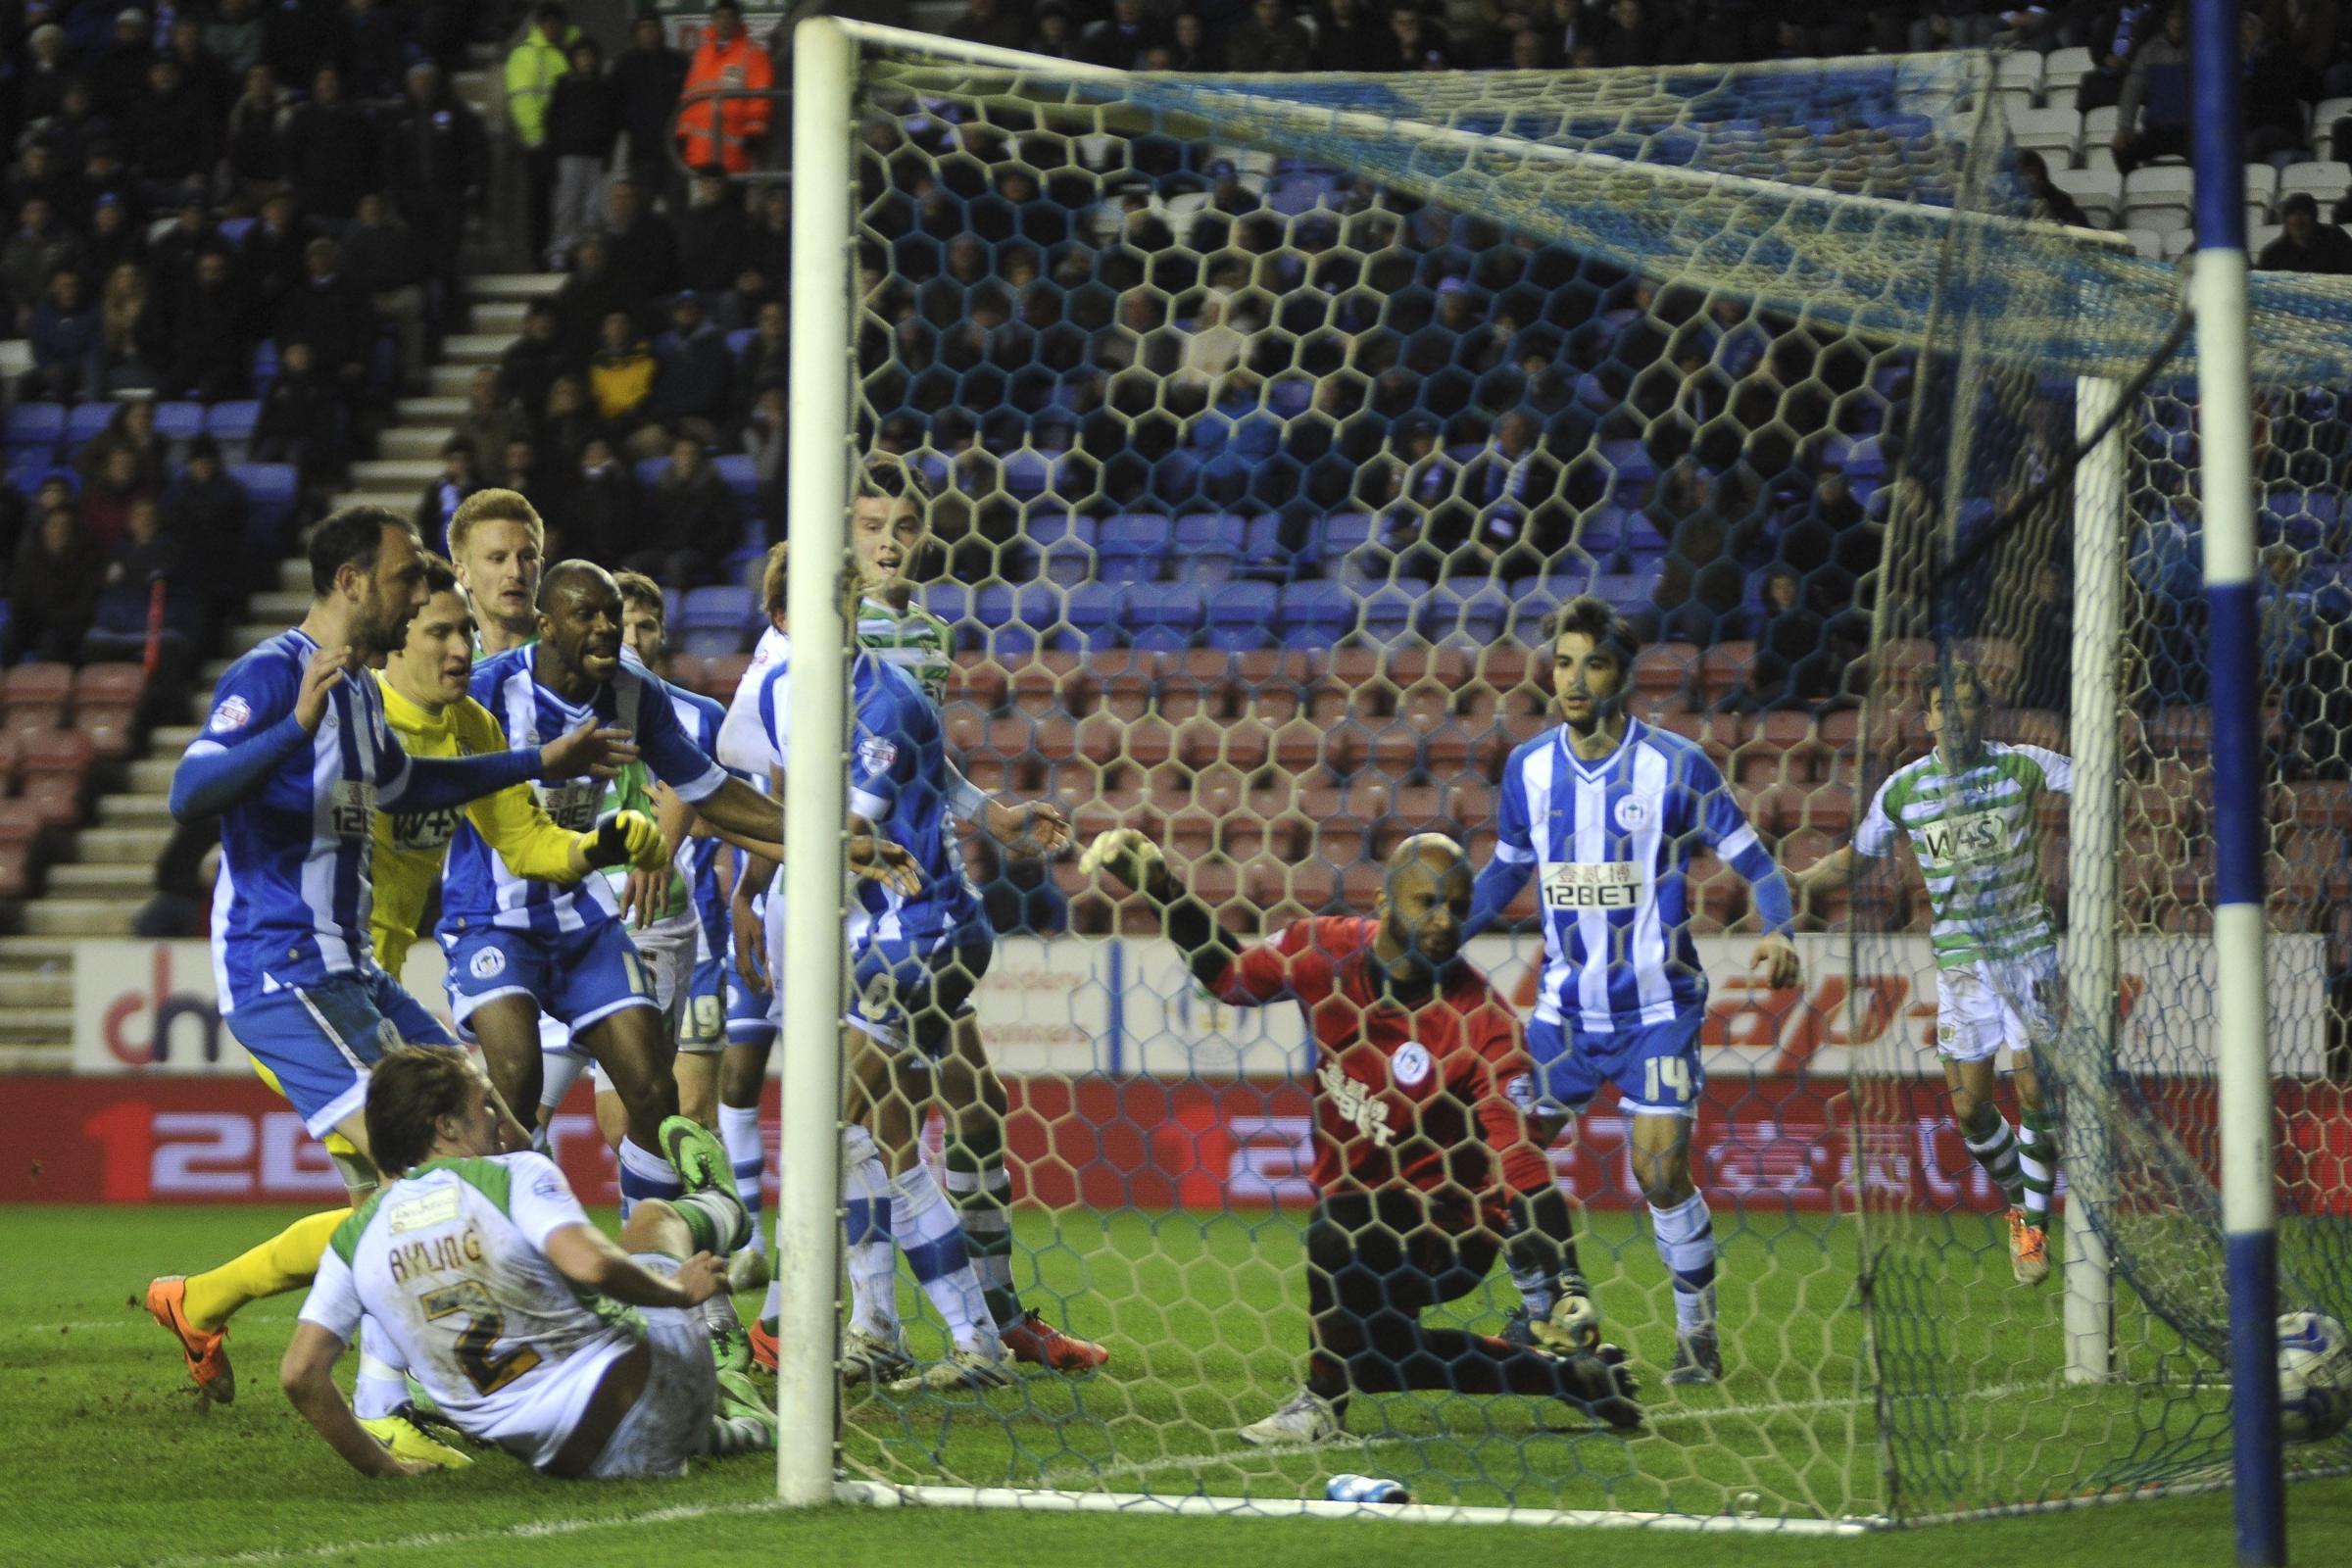 SkyBet Championship - Wigan Athletic 3, Yeovil Town 3